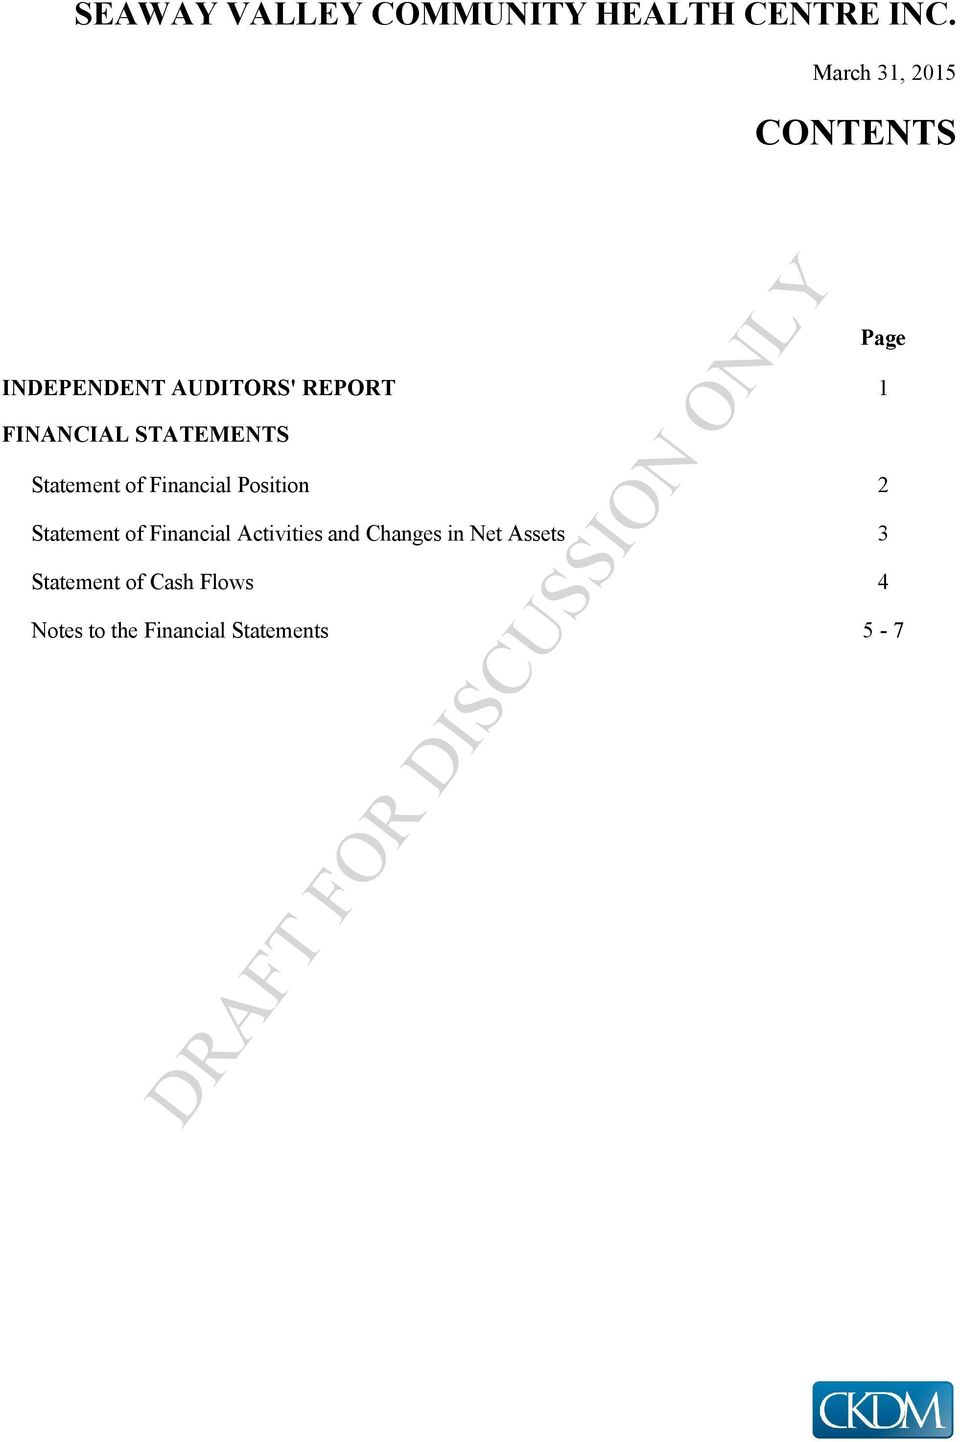 Statement of Financial Activities and Changes in Net Assets